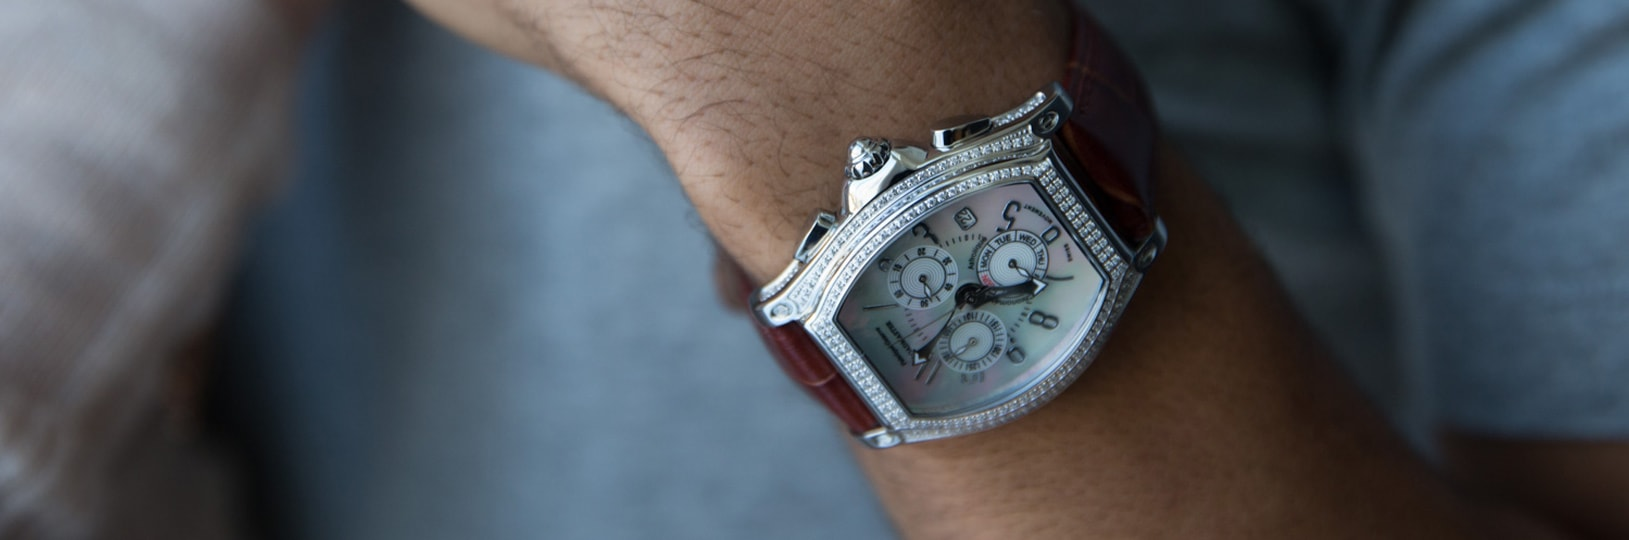 The wristwatch is a popular first anniversary gift